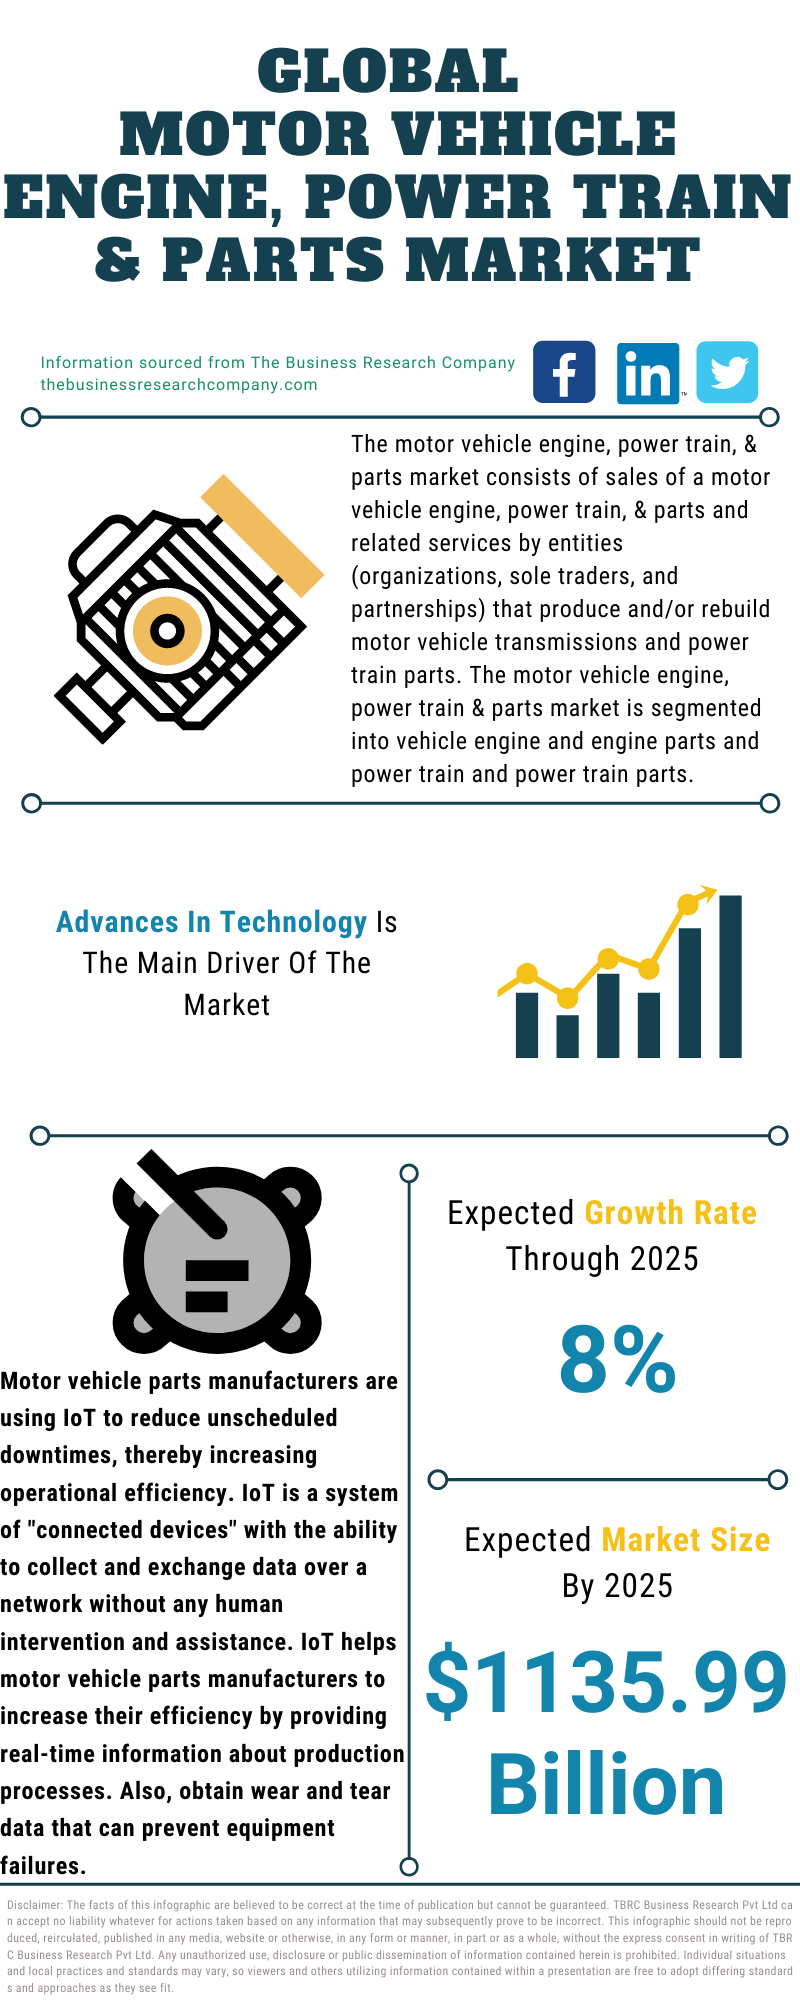 Motor Vehicle Body, Stamped Metal & Other Parts Market